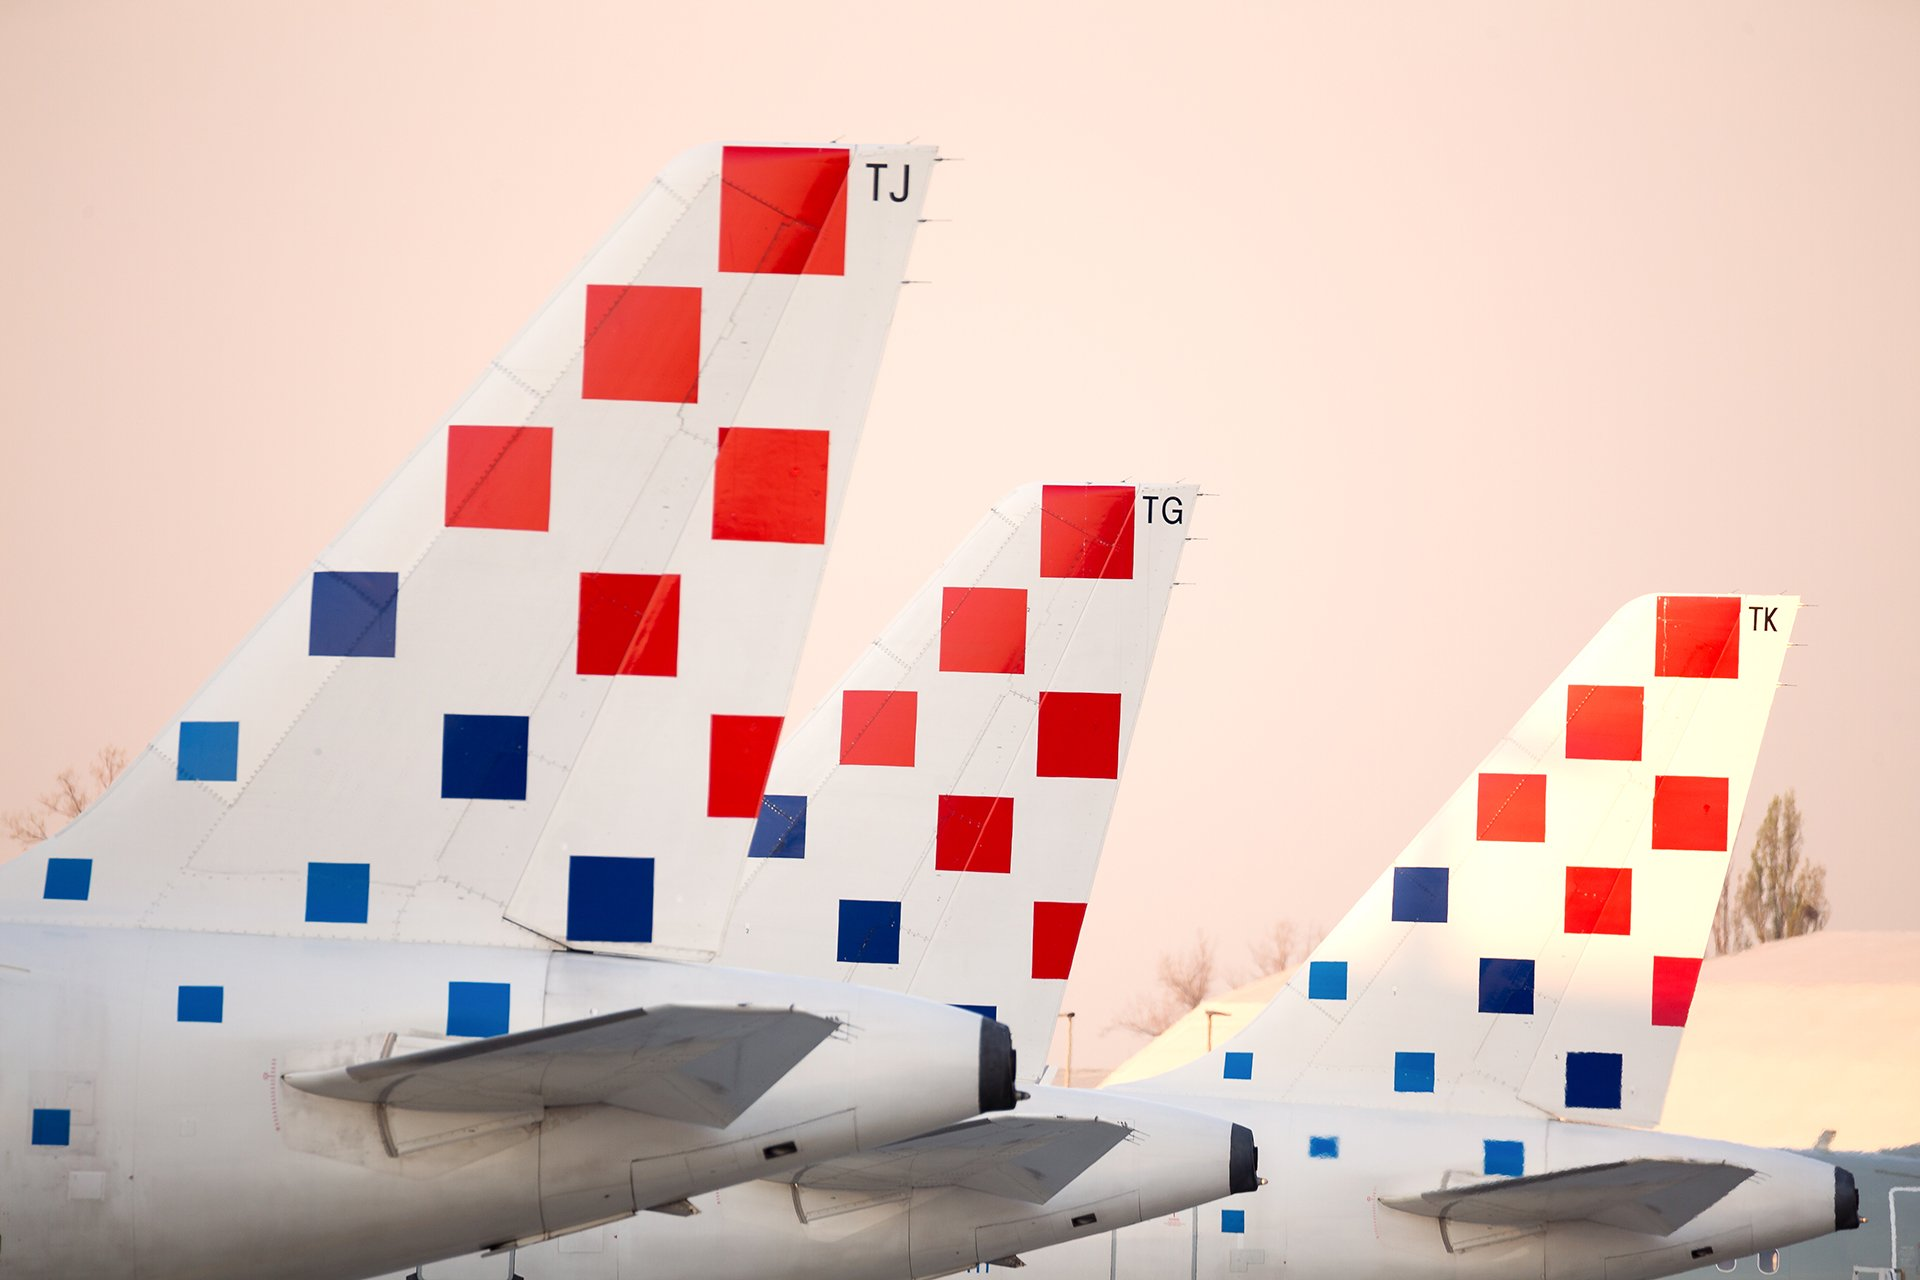 Croatia Airlines' battle with COVID-19 continues